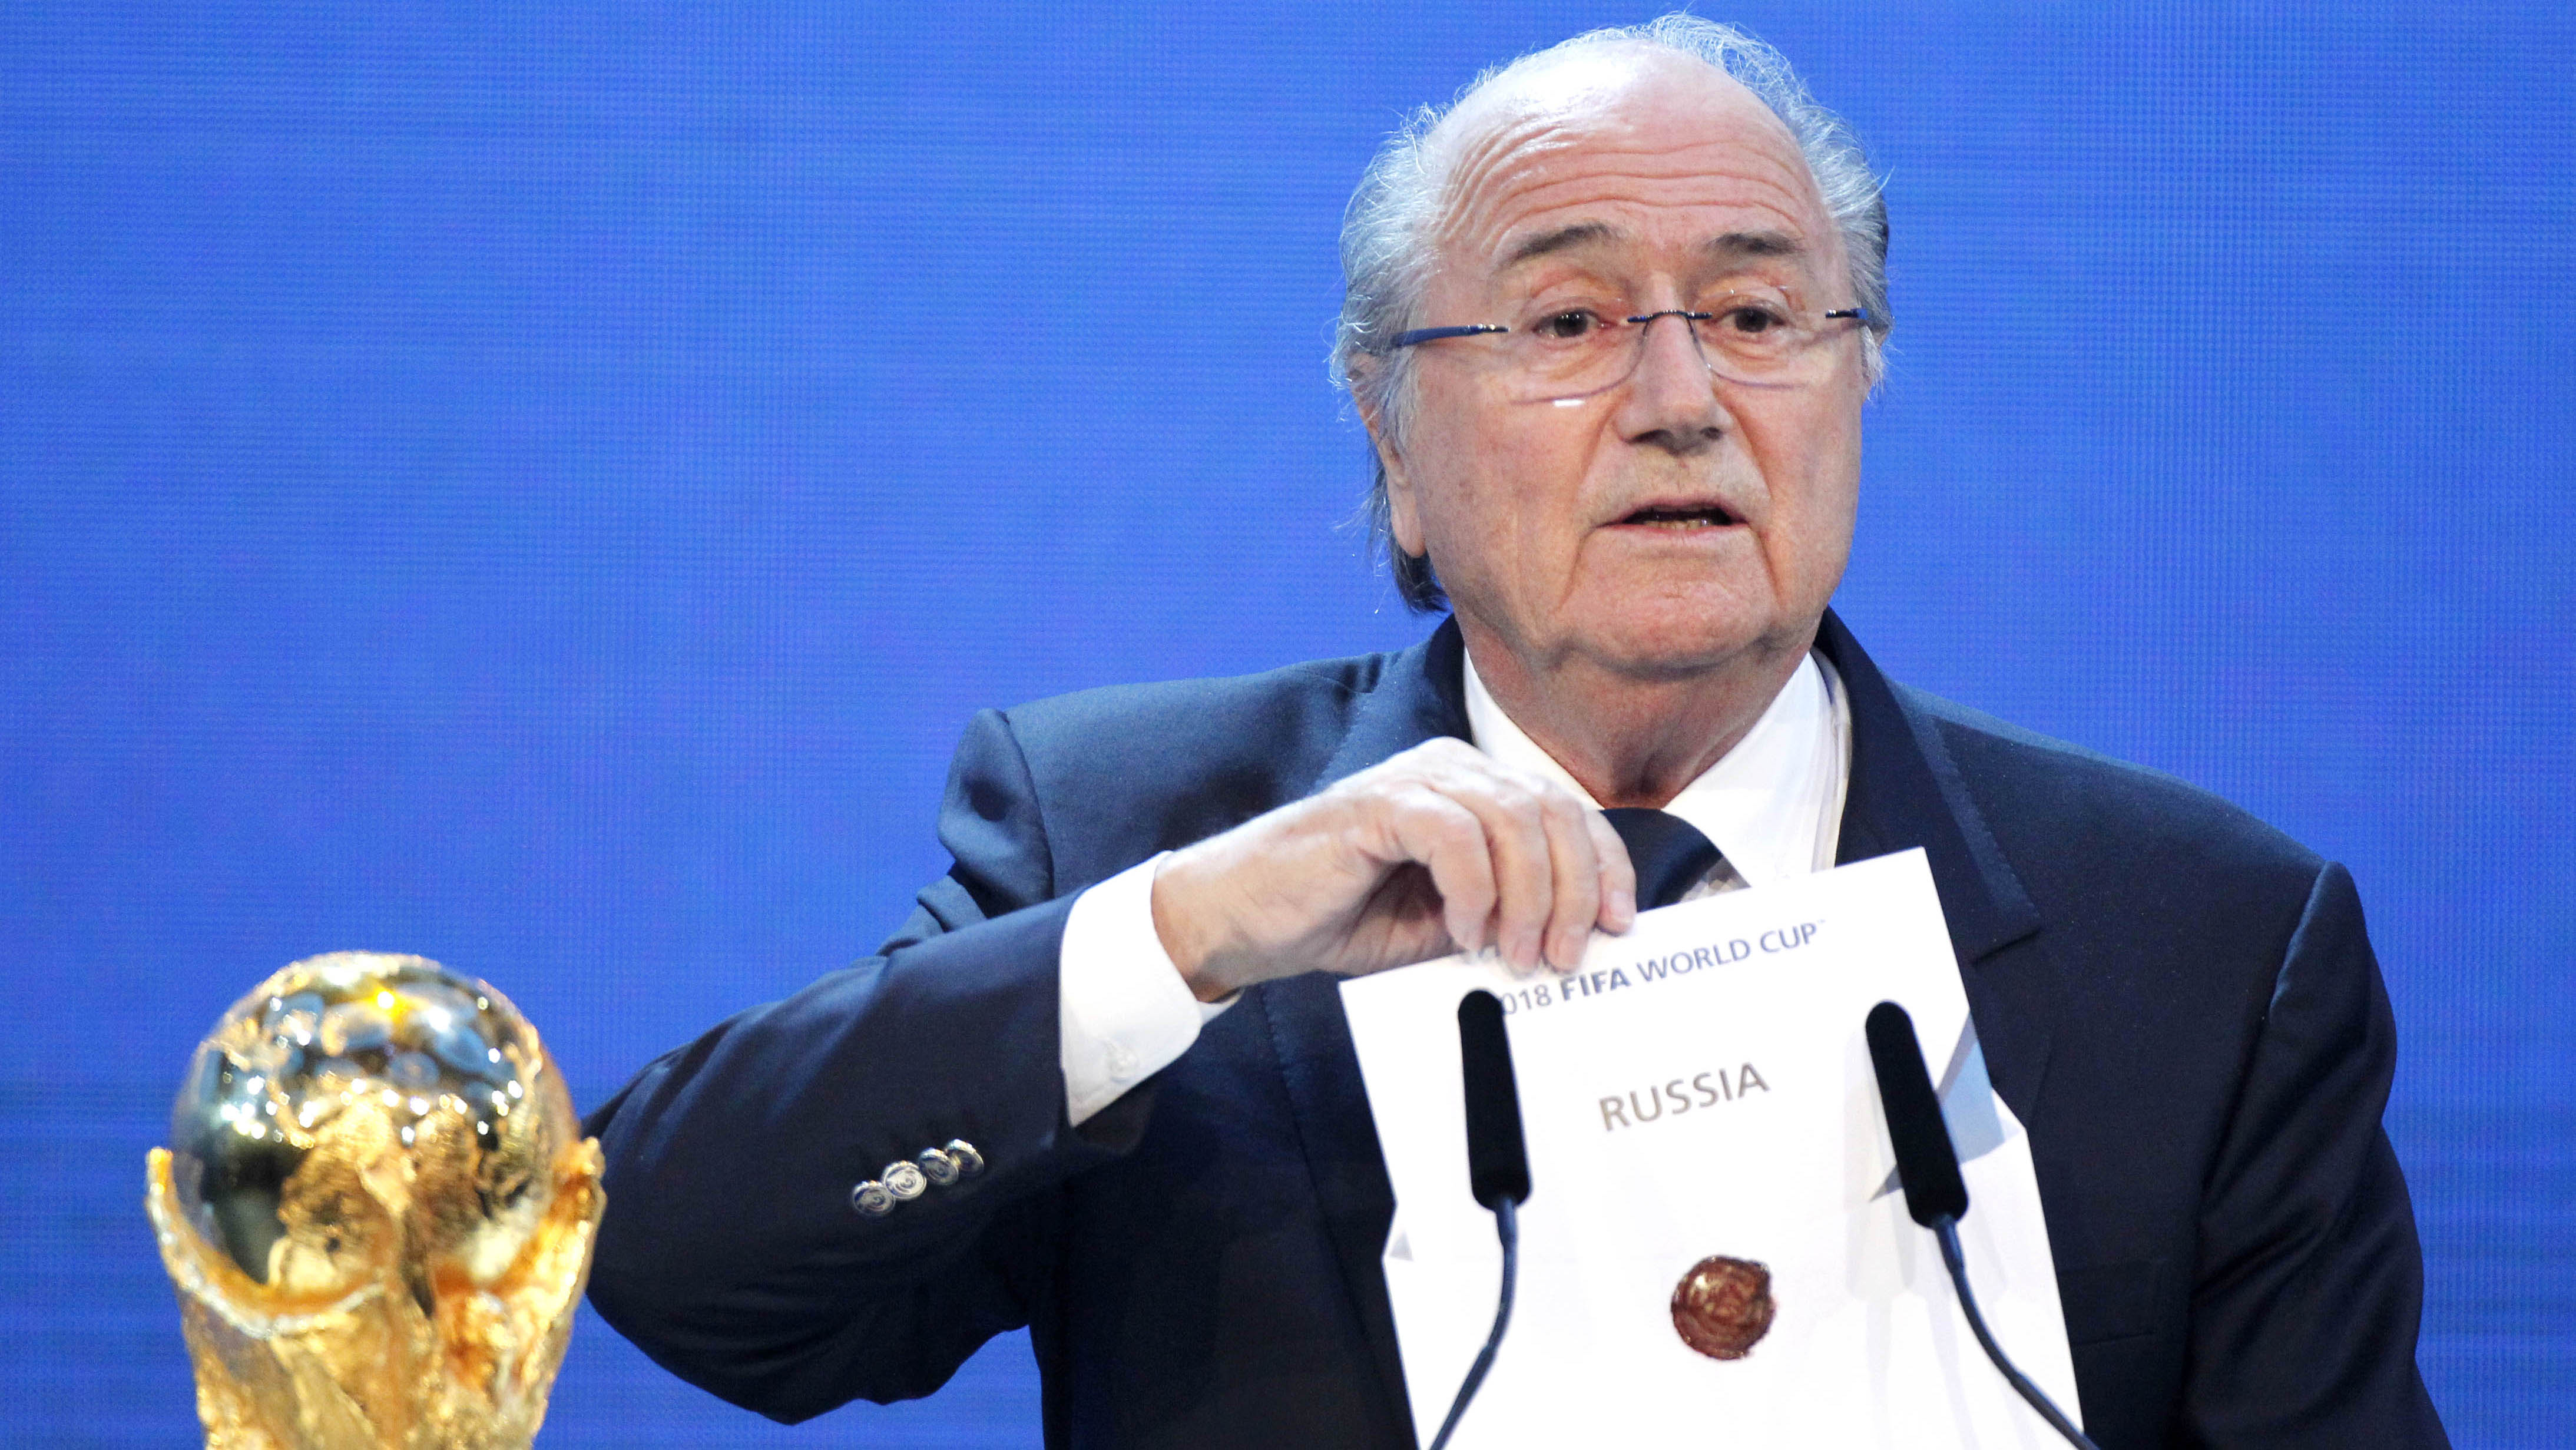 UNILAD sepp wc russia21994 Sepp Blatter Claims Russia Was Given World Cup Before Vote